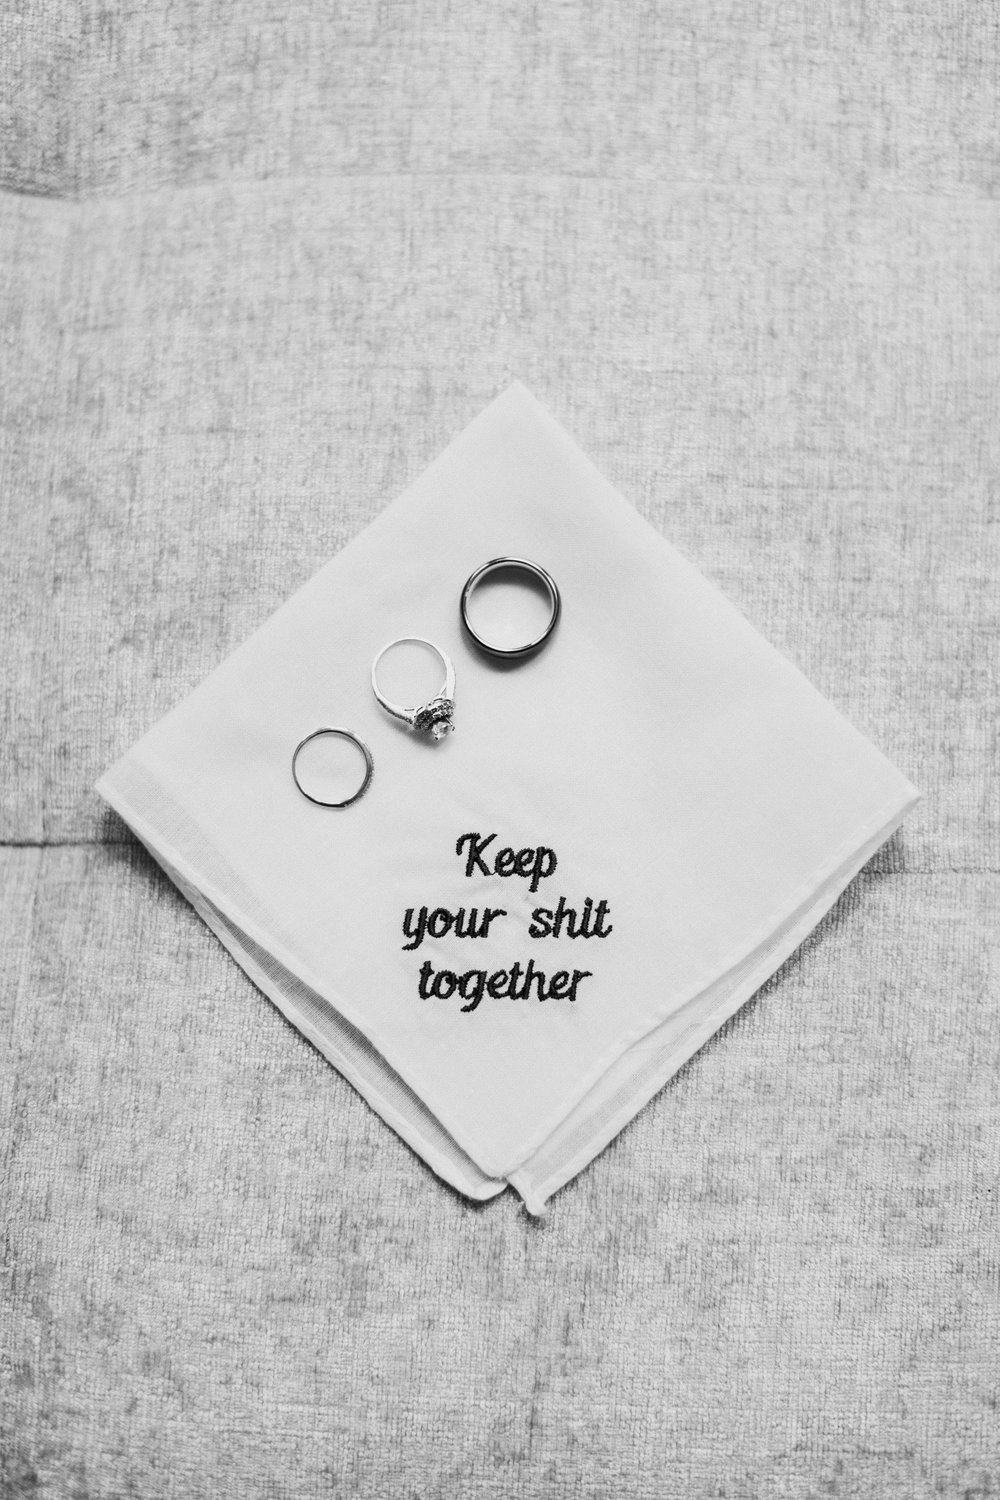 handkerchief-keep-your-shit-together.jpg